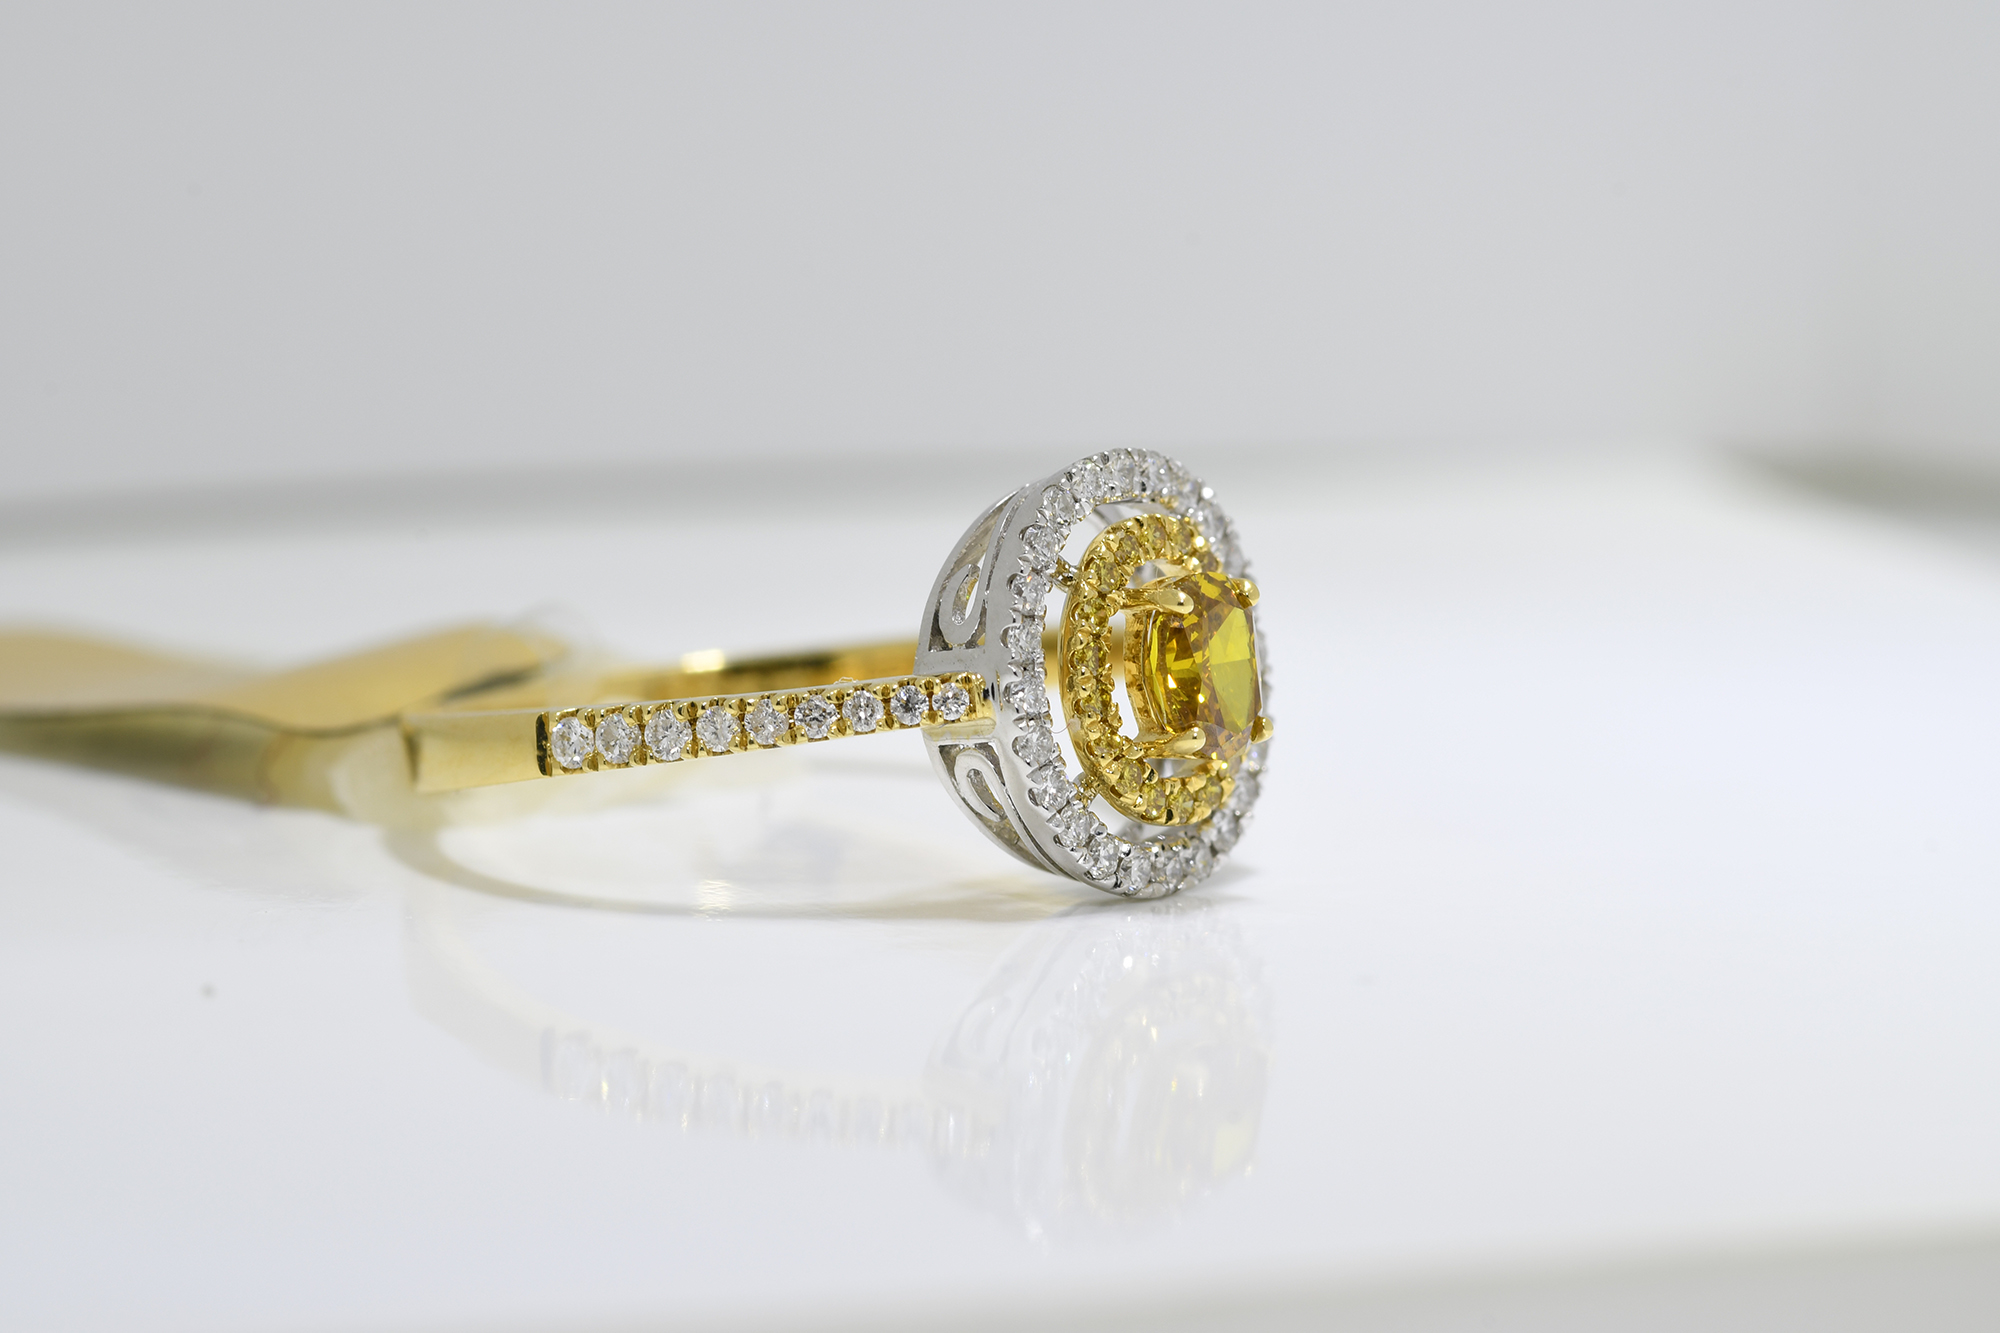 Oval Cognac Diamond Ring - Image 2 of 3